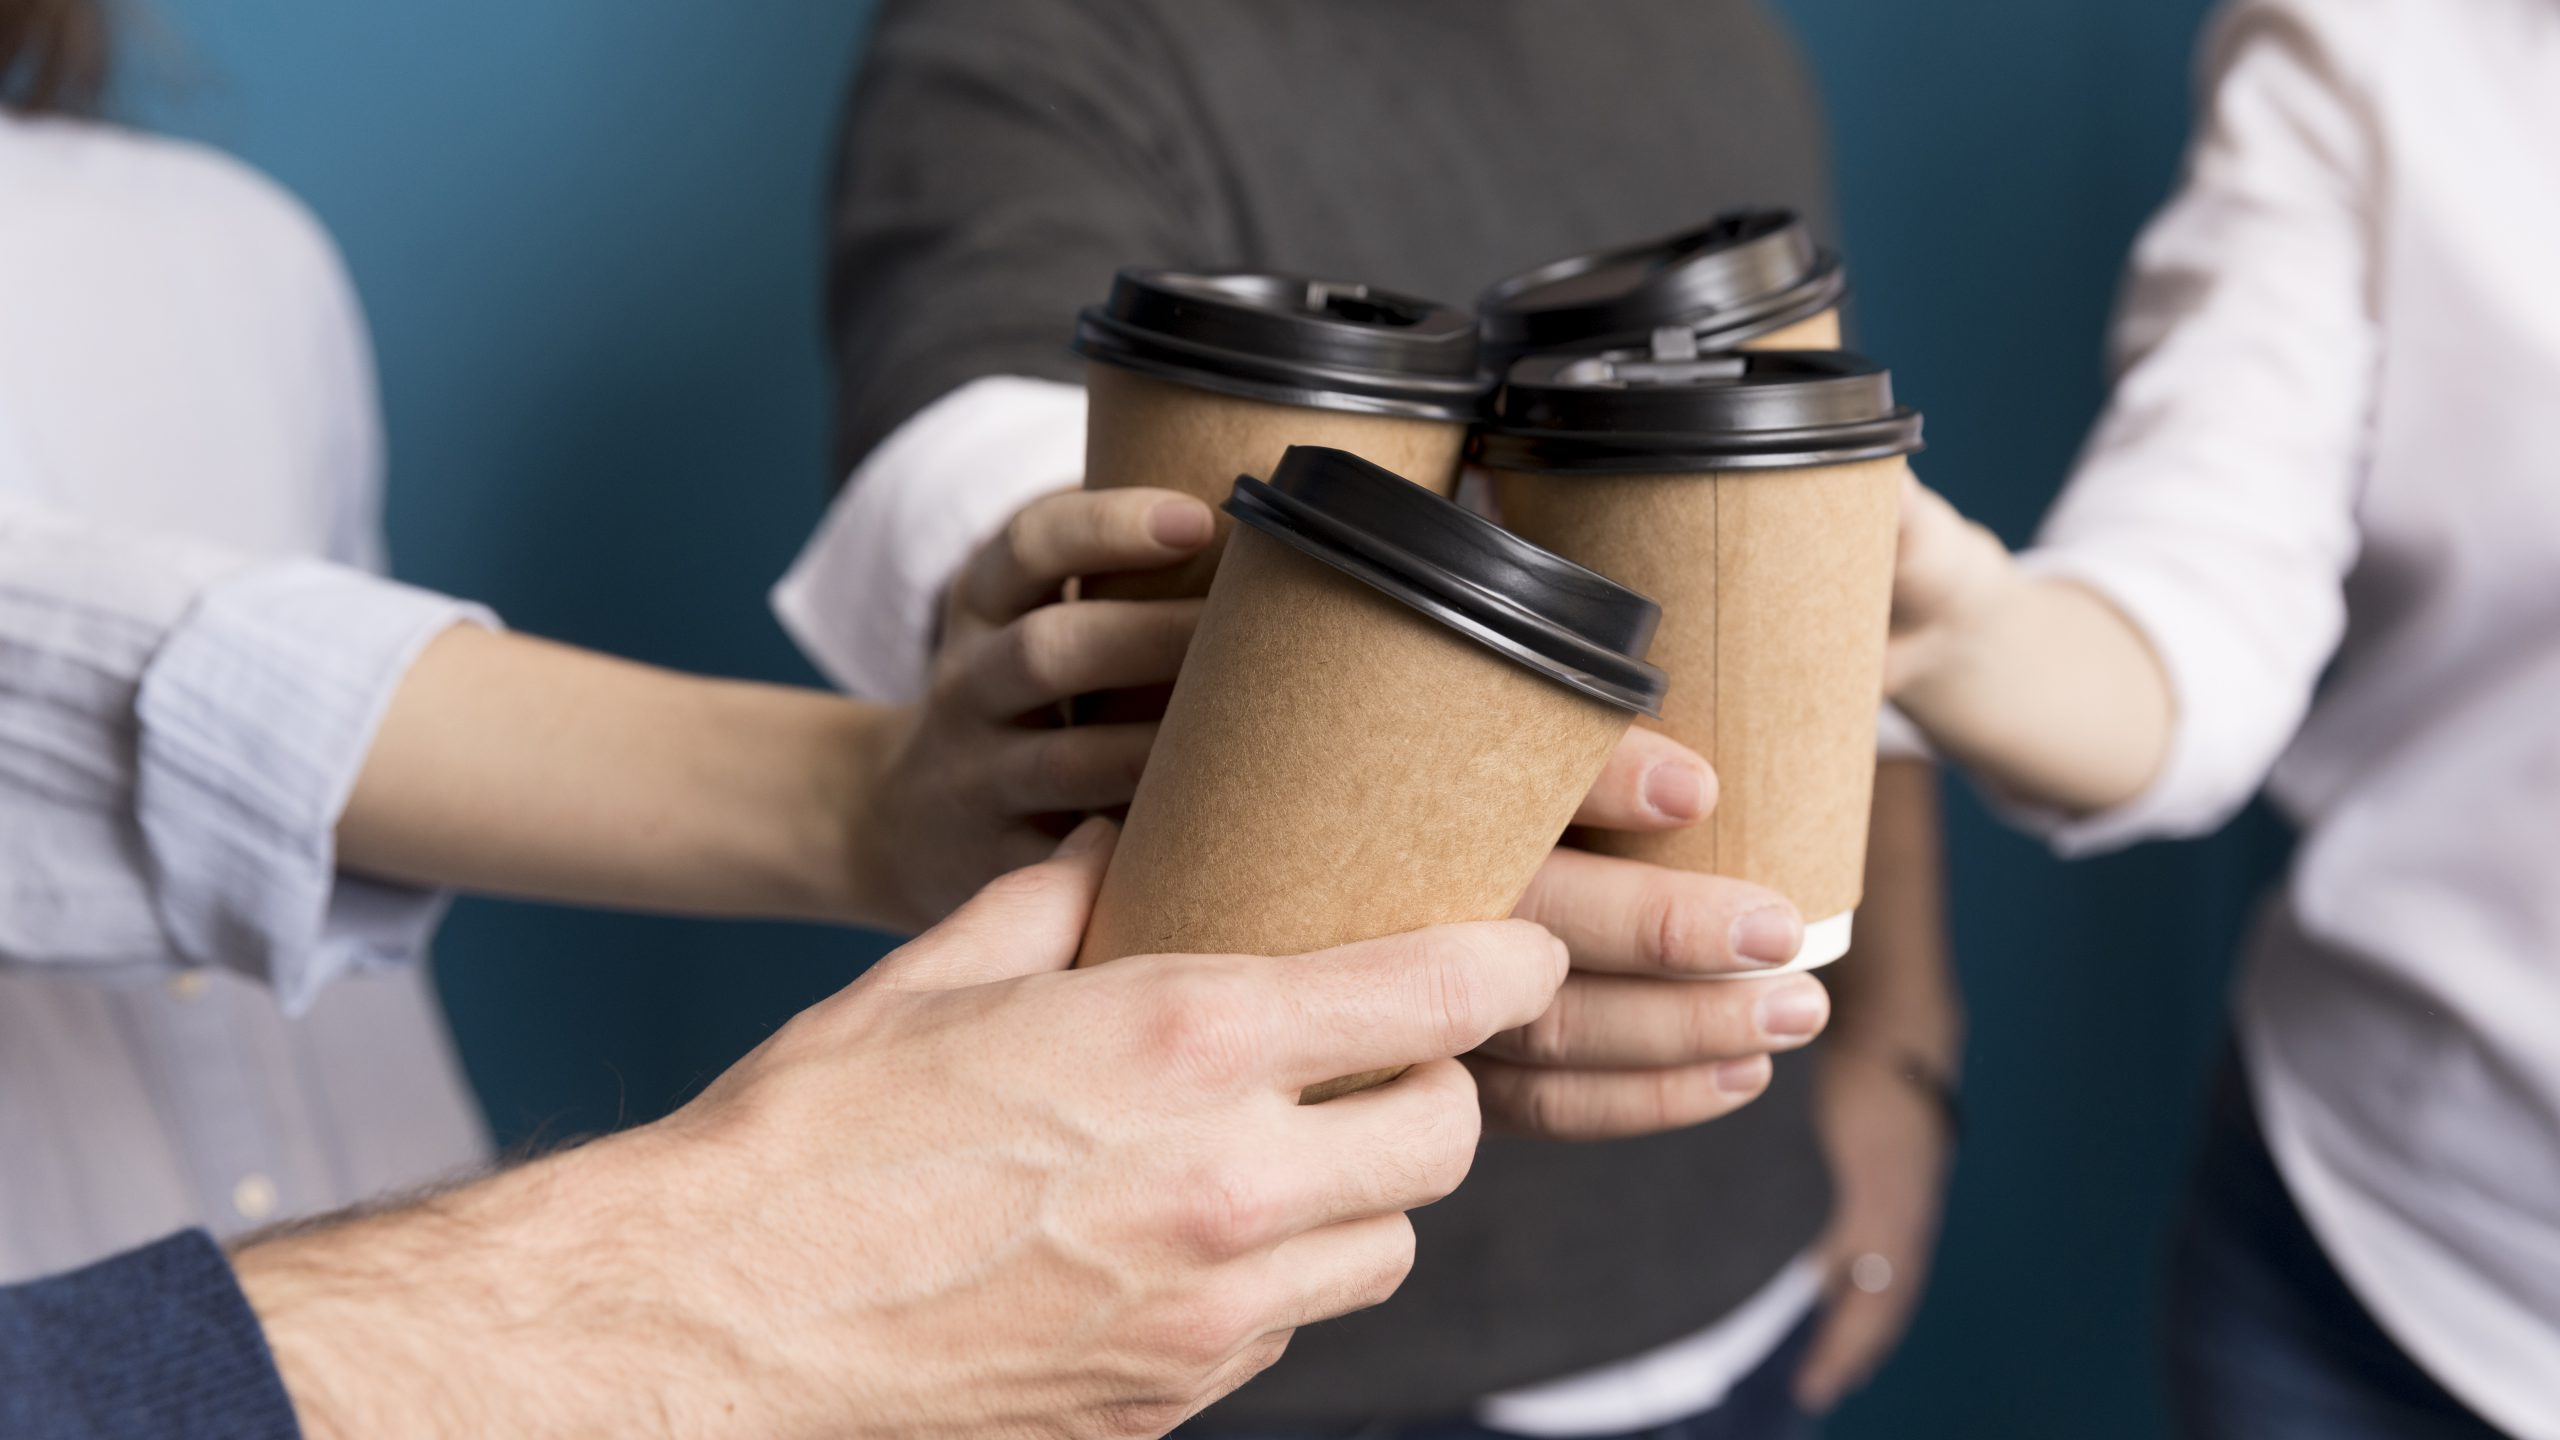 colleagues having coffee